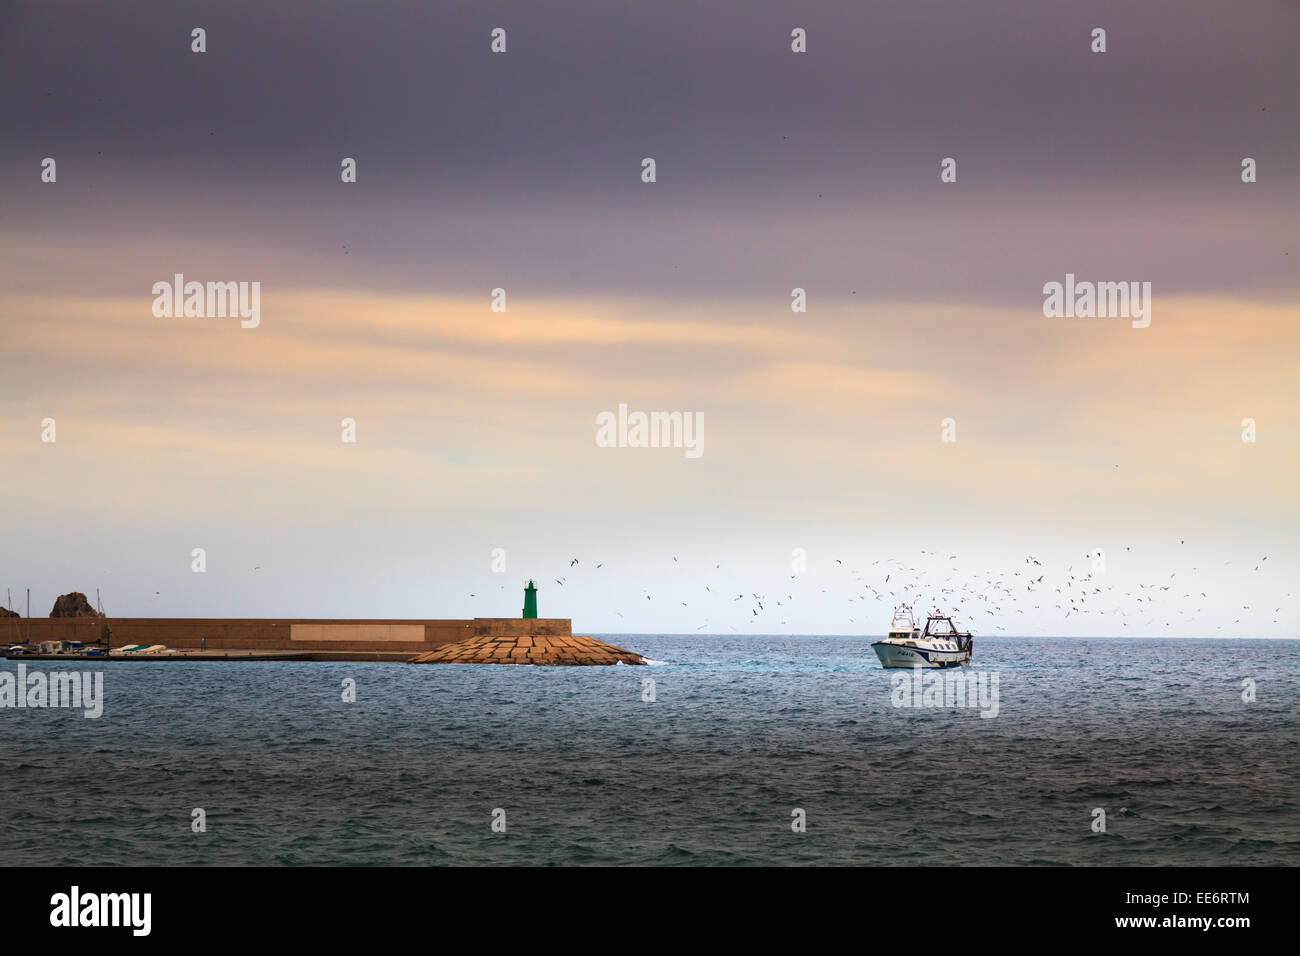 Fishing trawler returning to Javea harbour at the end of the day surrounded by sea birds - Stock Image